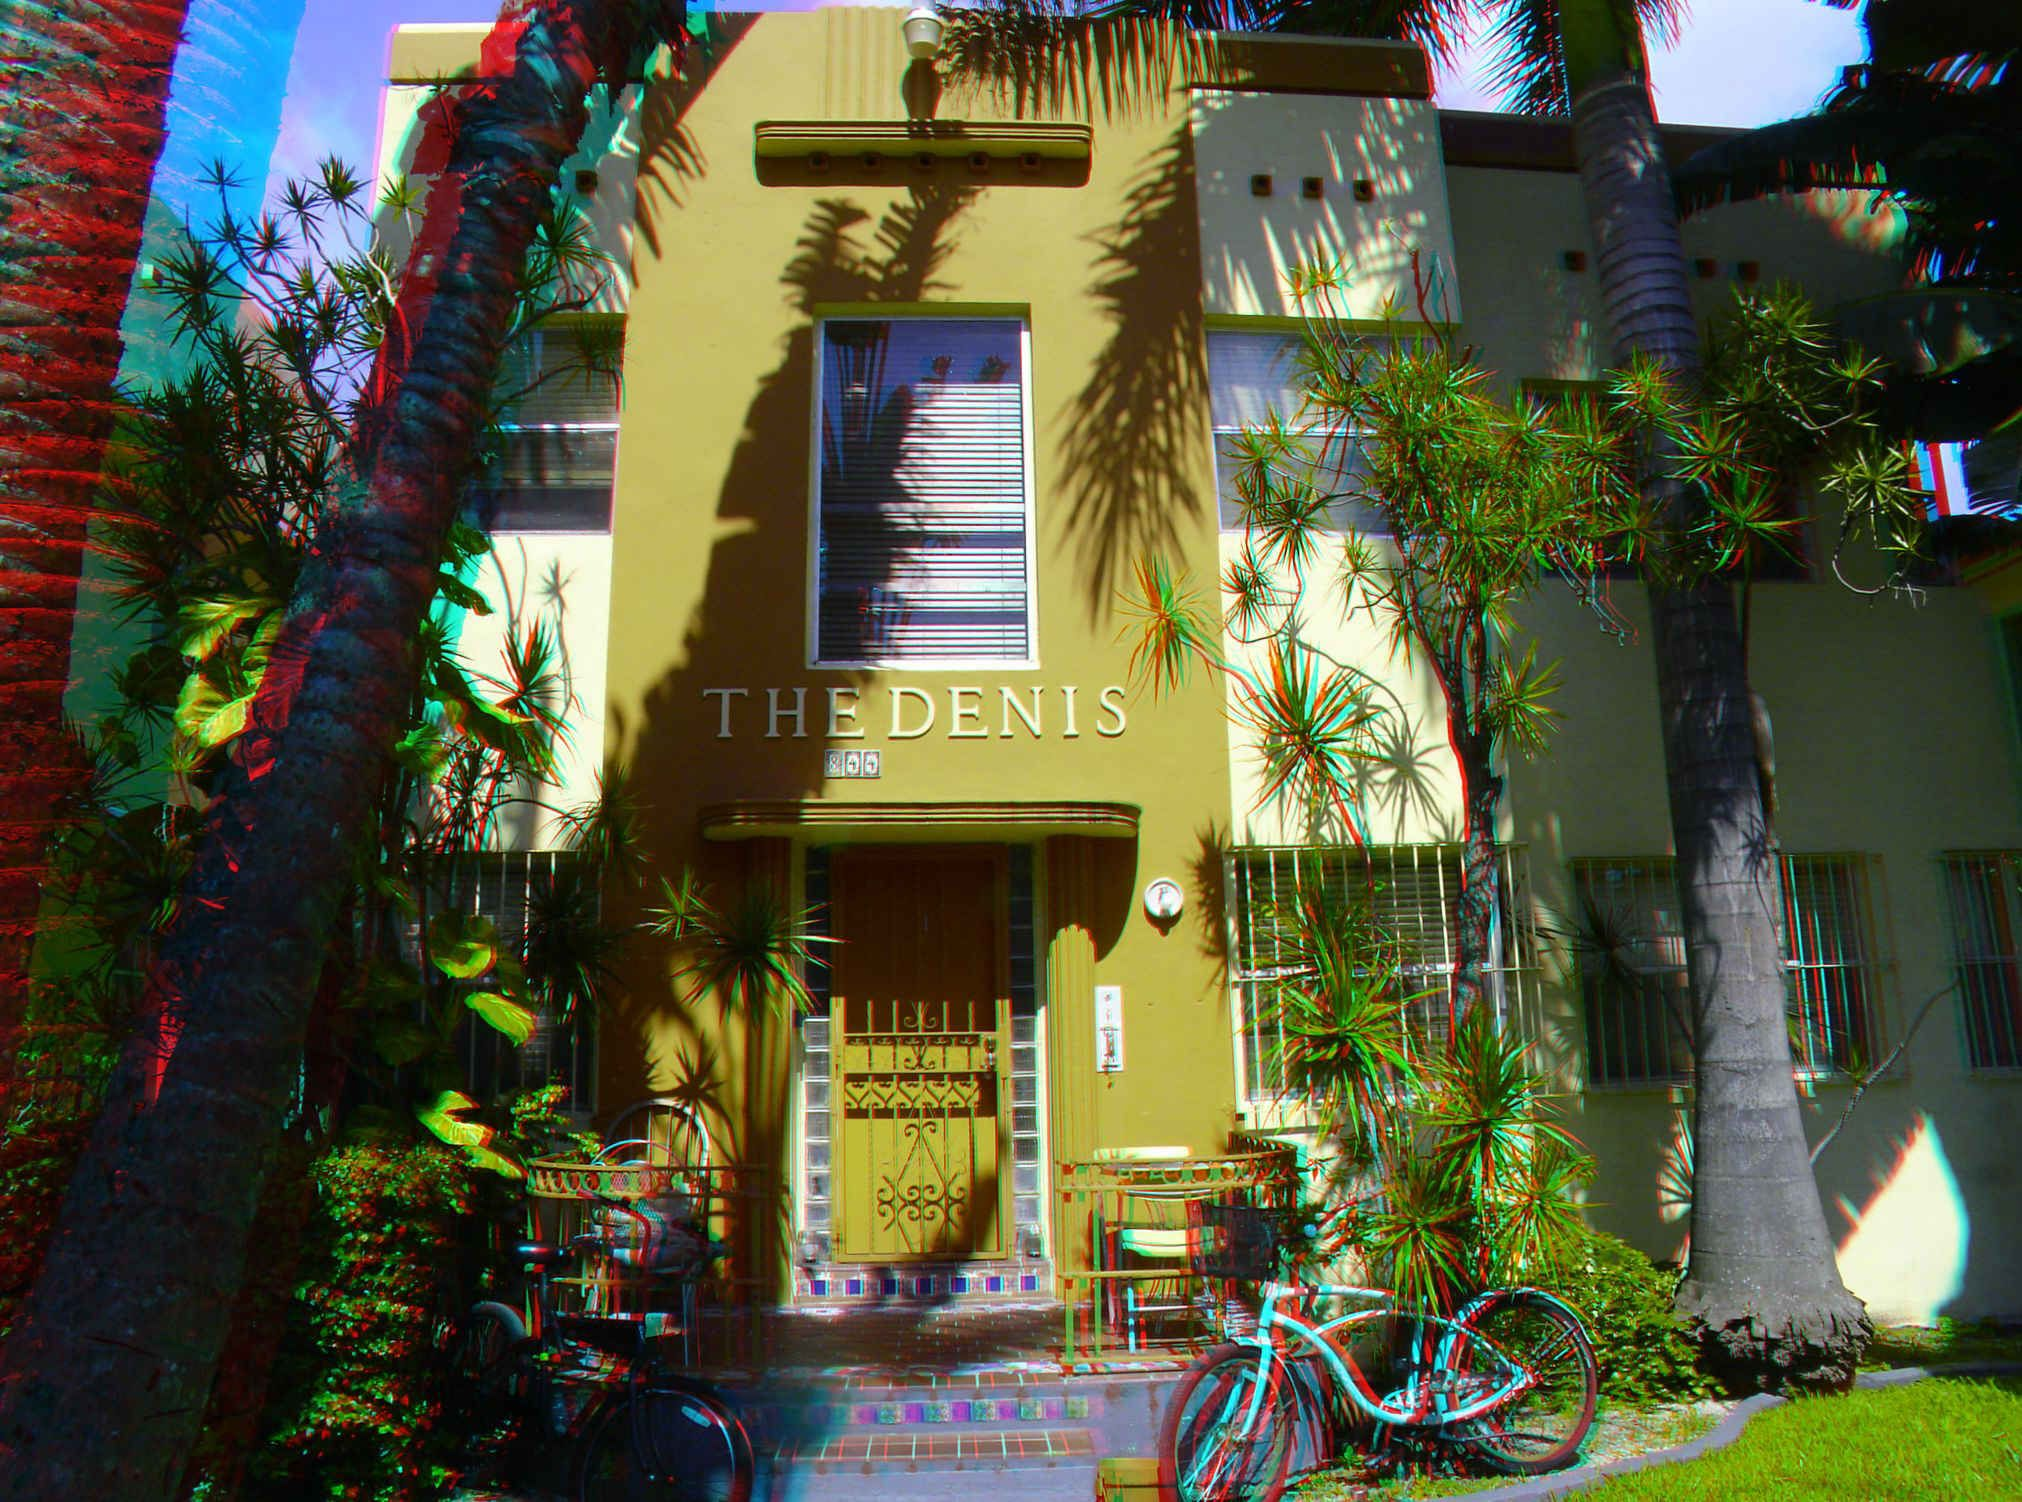 """844 Euclid Avenue - The Denis Apartments - Built: 1938 - Architect: Arnold Southwell - Style: Art Deco - Google """"anaglyph glasses"""" to view in 3D!"""